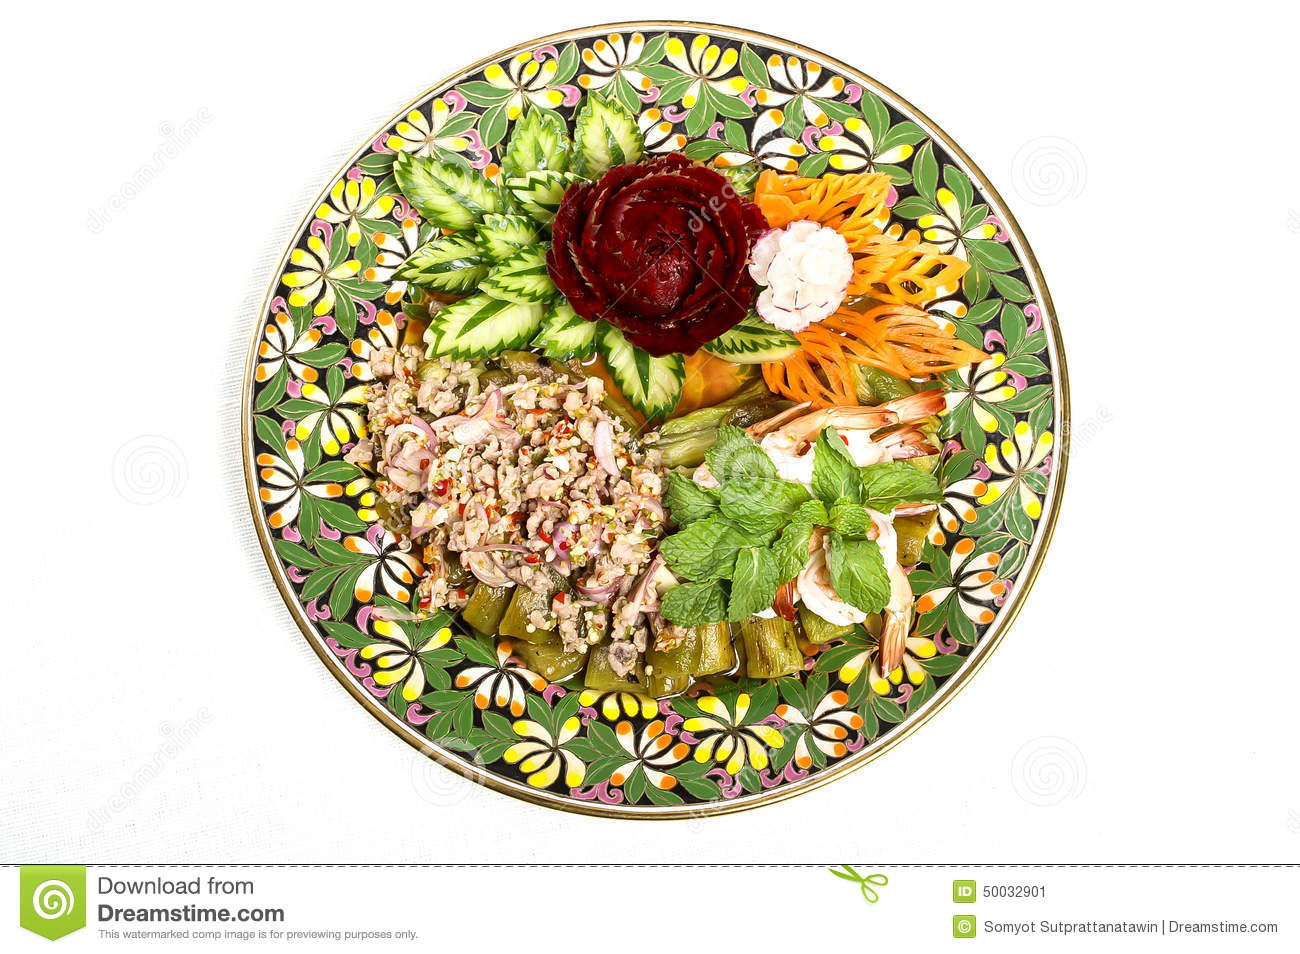 Spicy Pork Salad Decorated By Carving Vegetable Stock Image Image